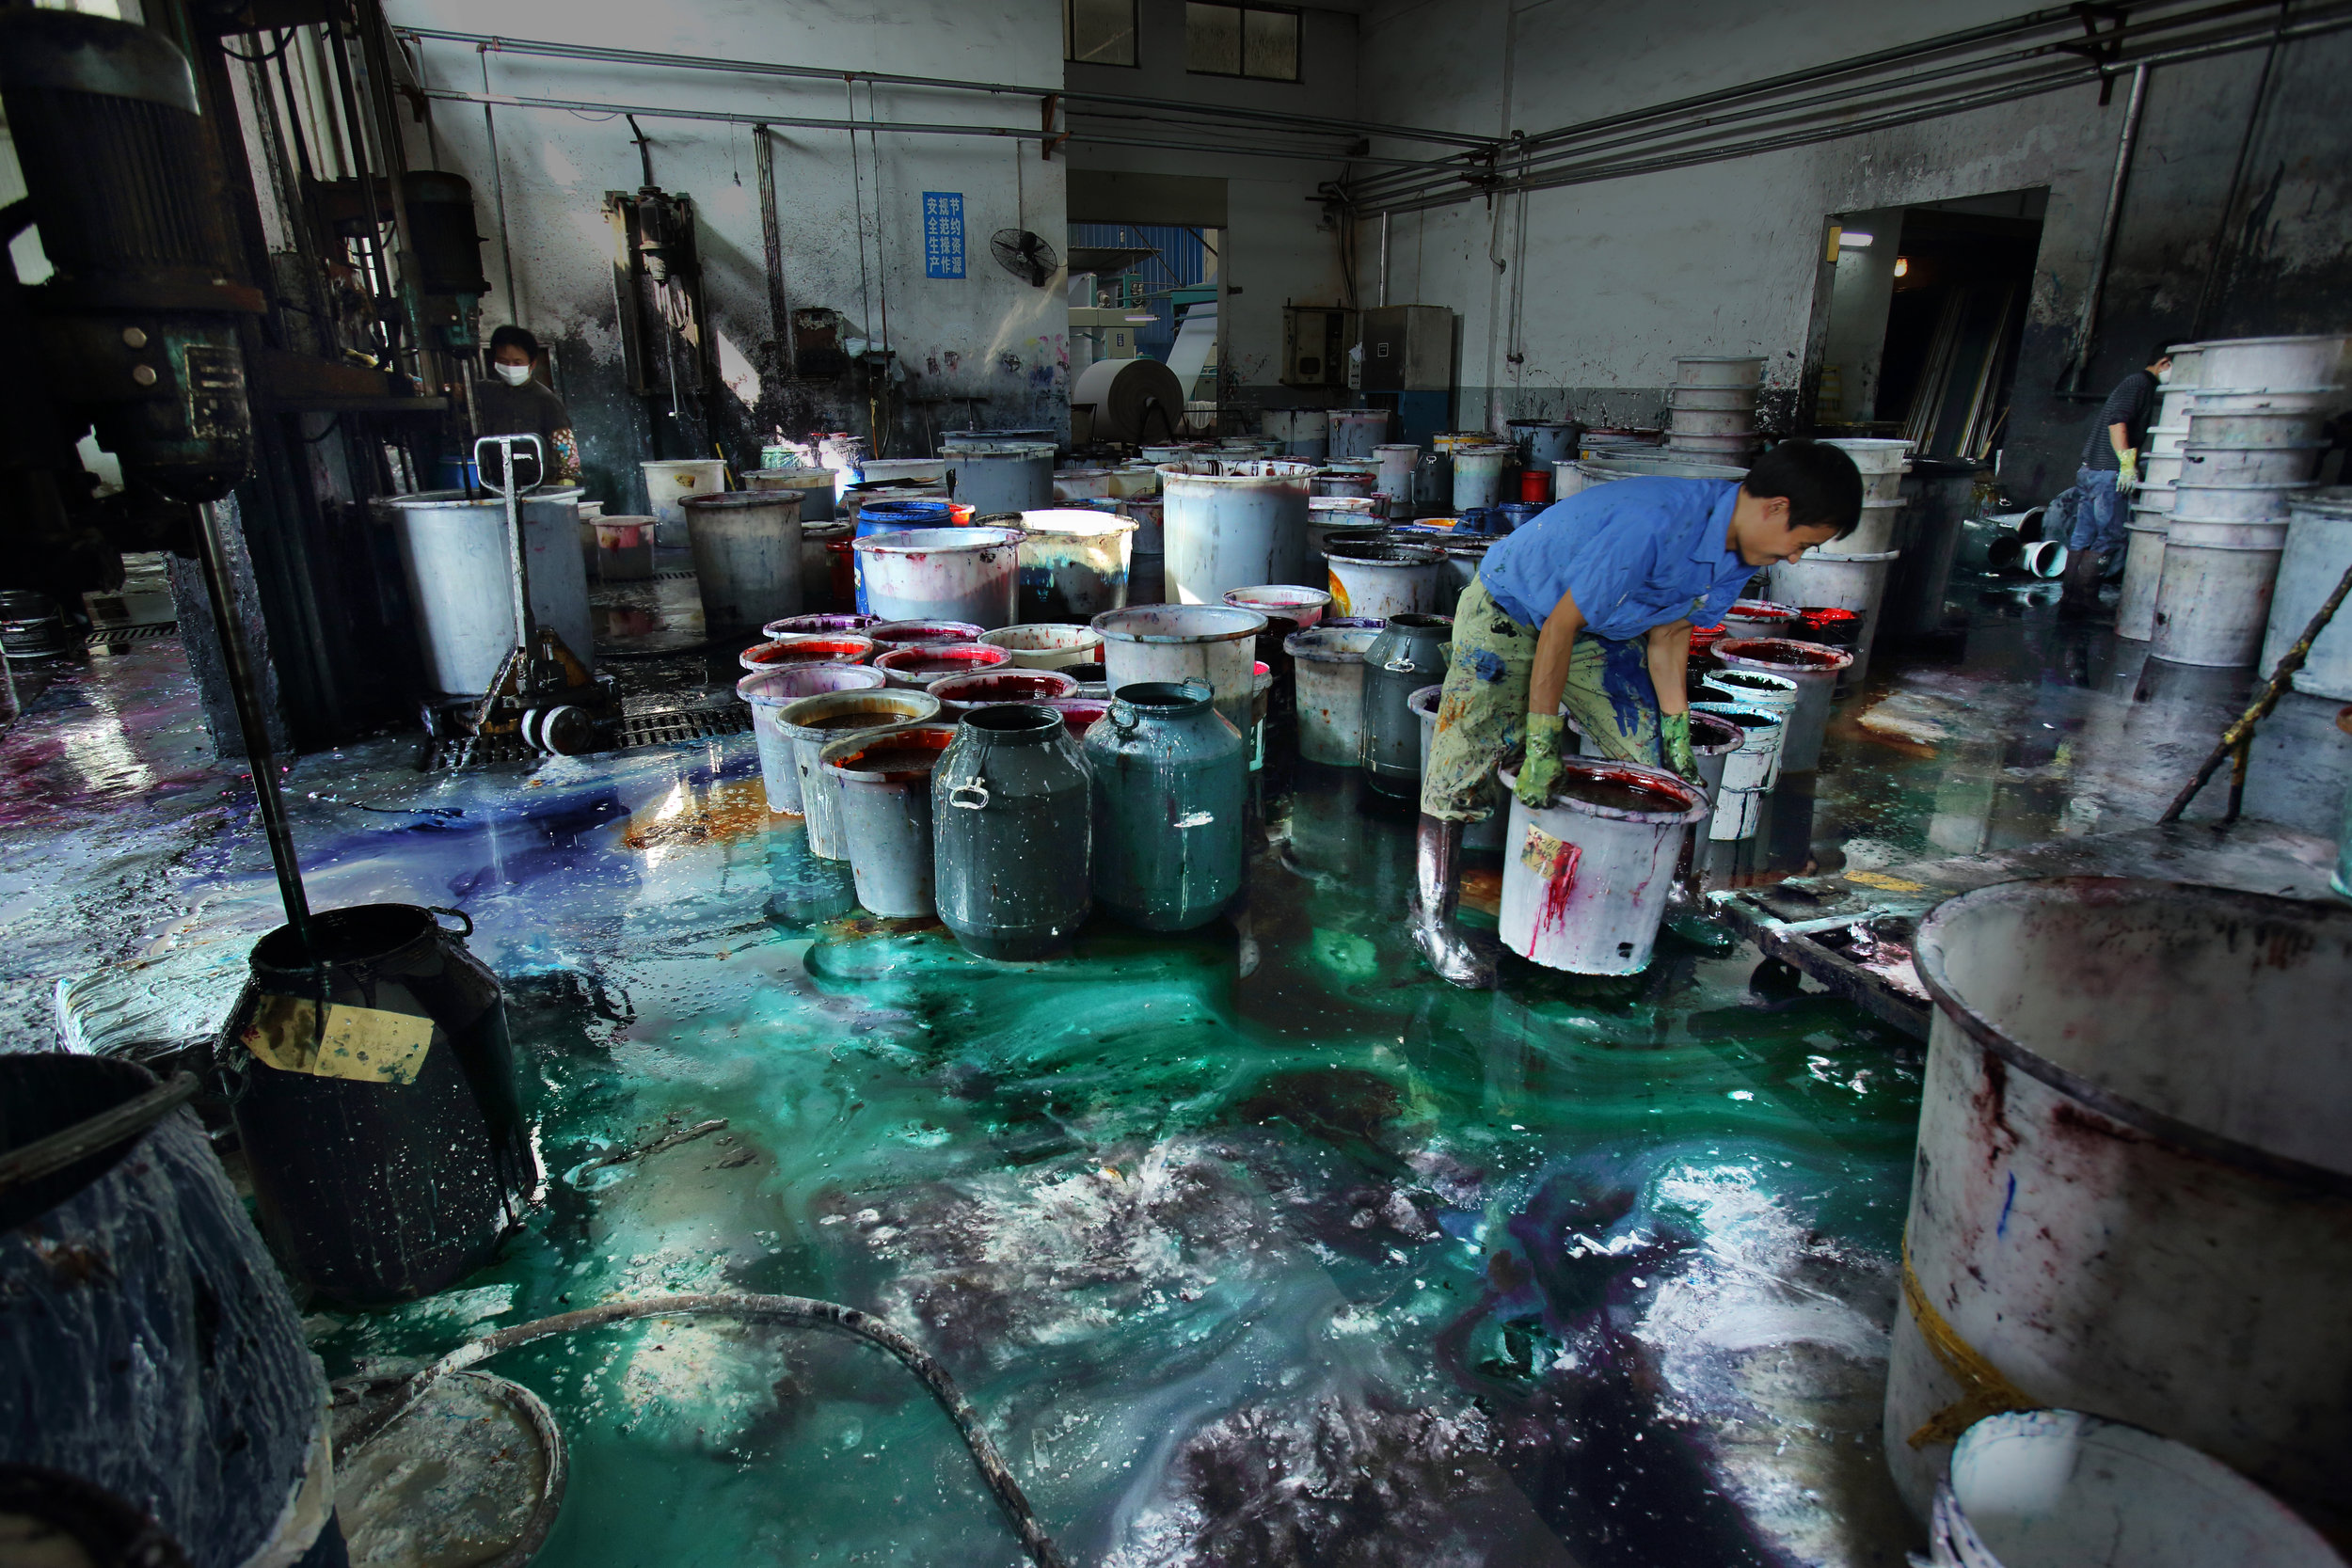 COPYRIGHT LU GUANG/ GREENPEACE Dye Plant in Zhejiang, China   Greenpeace's Detox My Fashion campaign brought attention to pollution and health hazards of dyes and other chemicals used in textile manufacturing